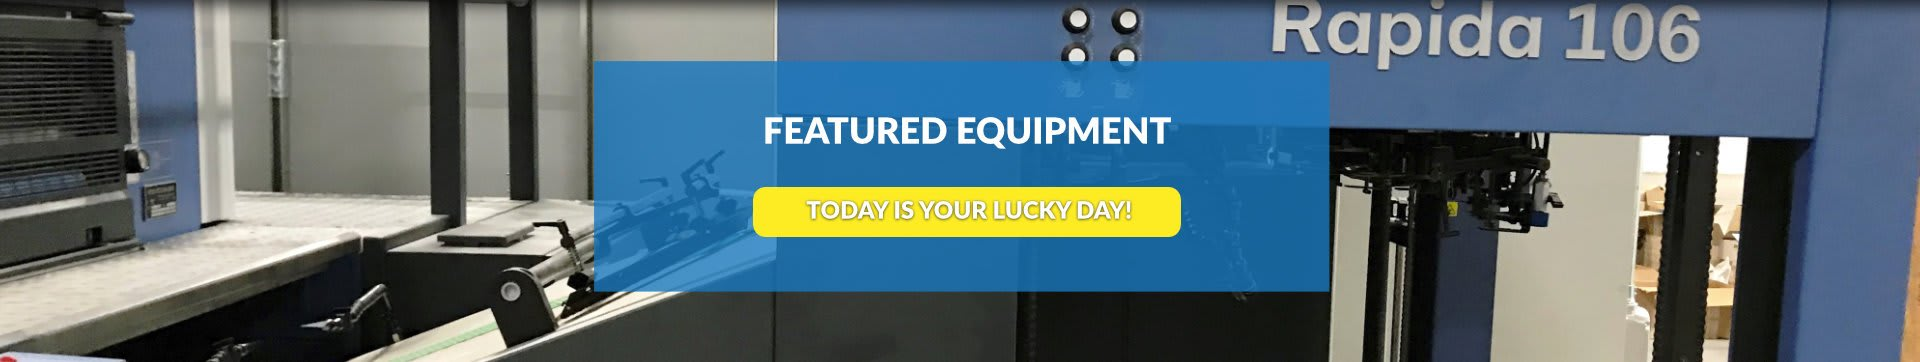 featured equipment